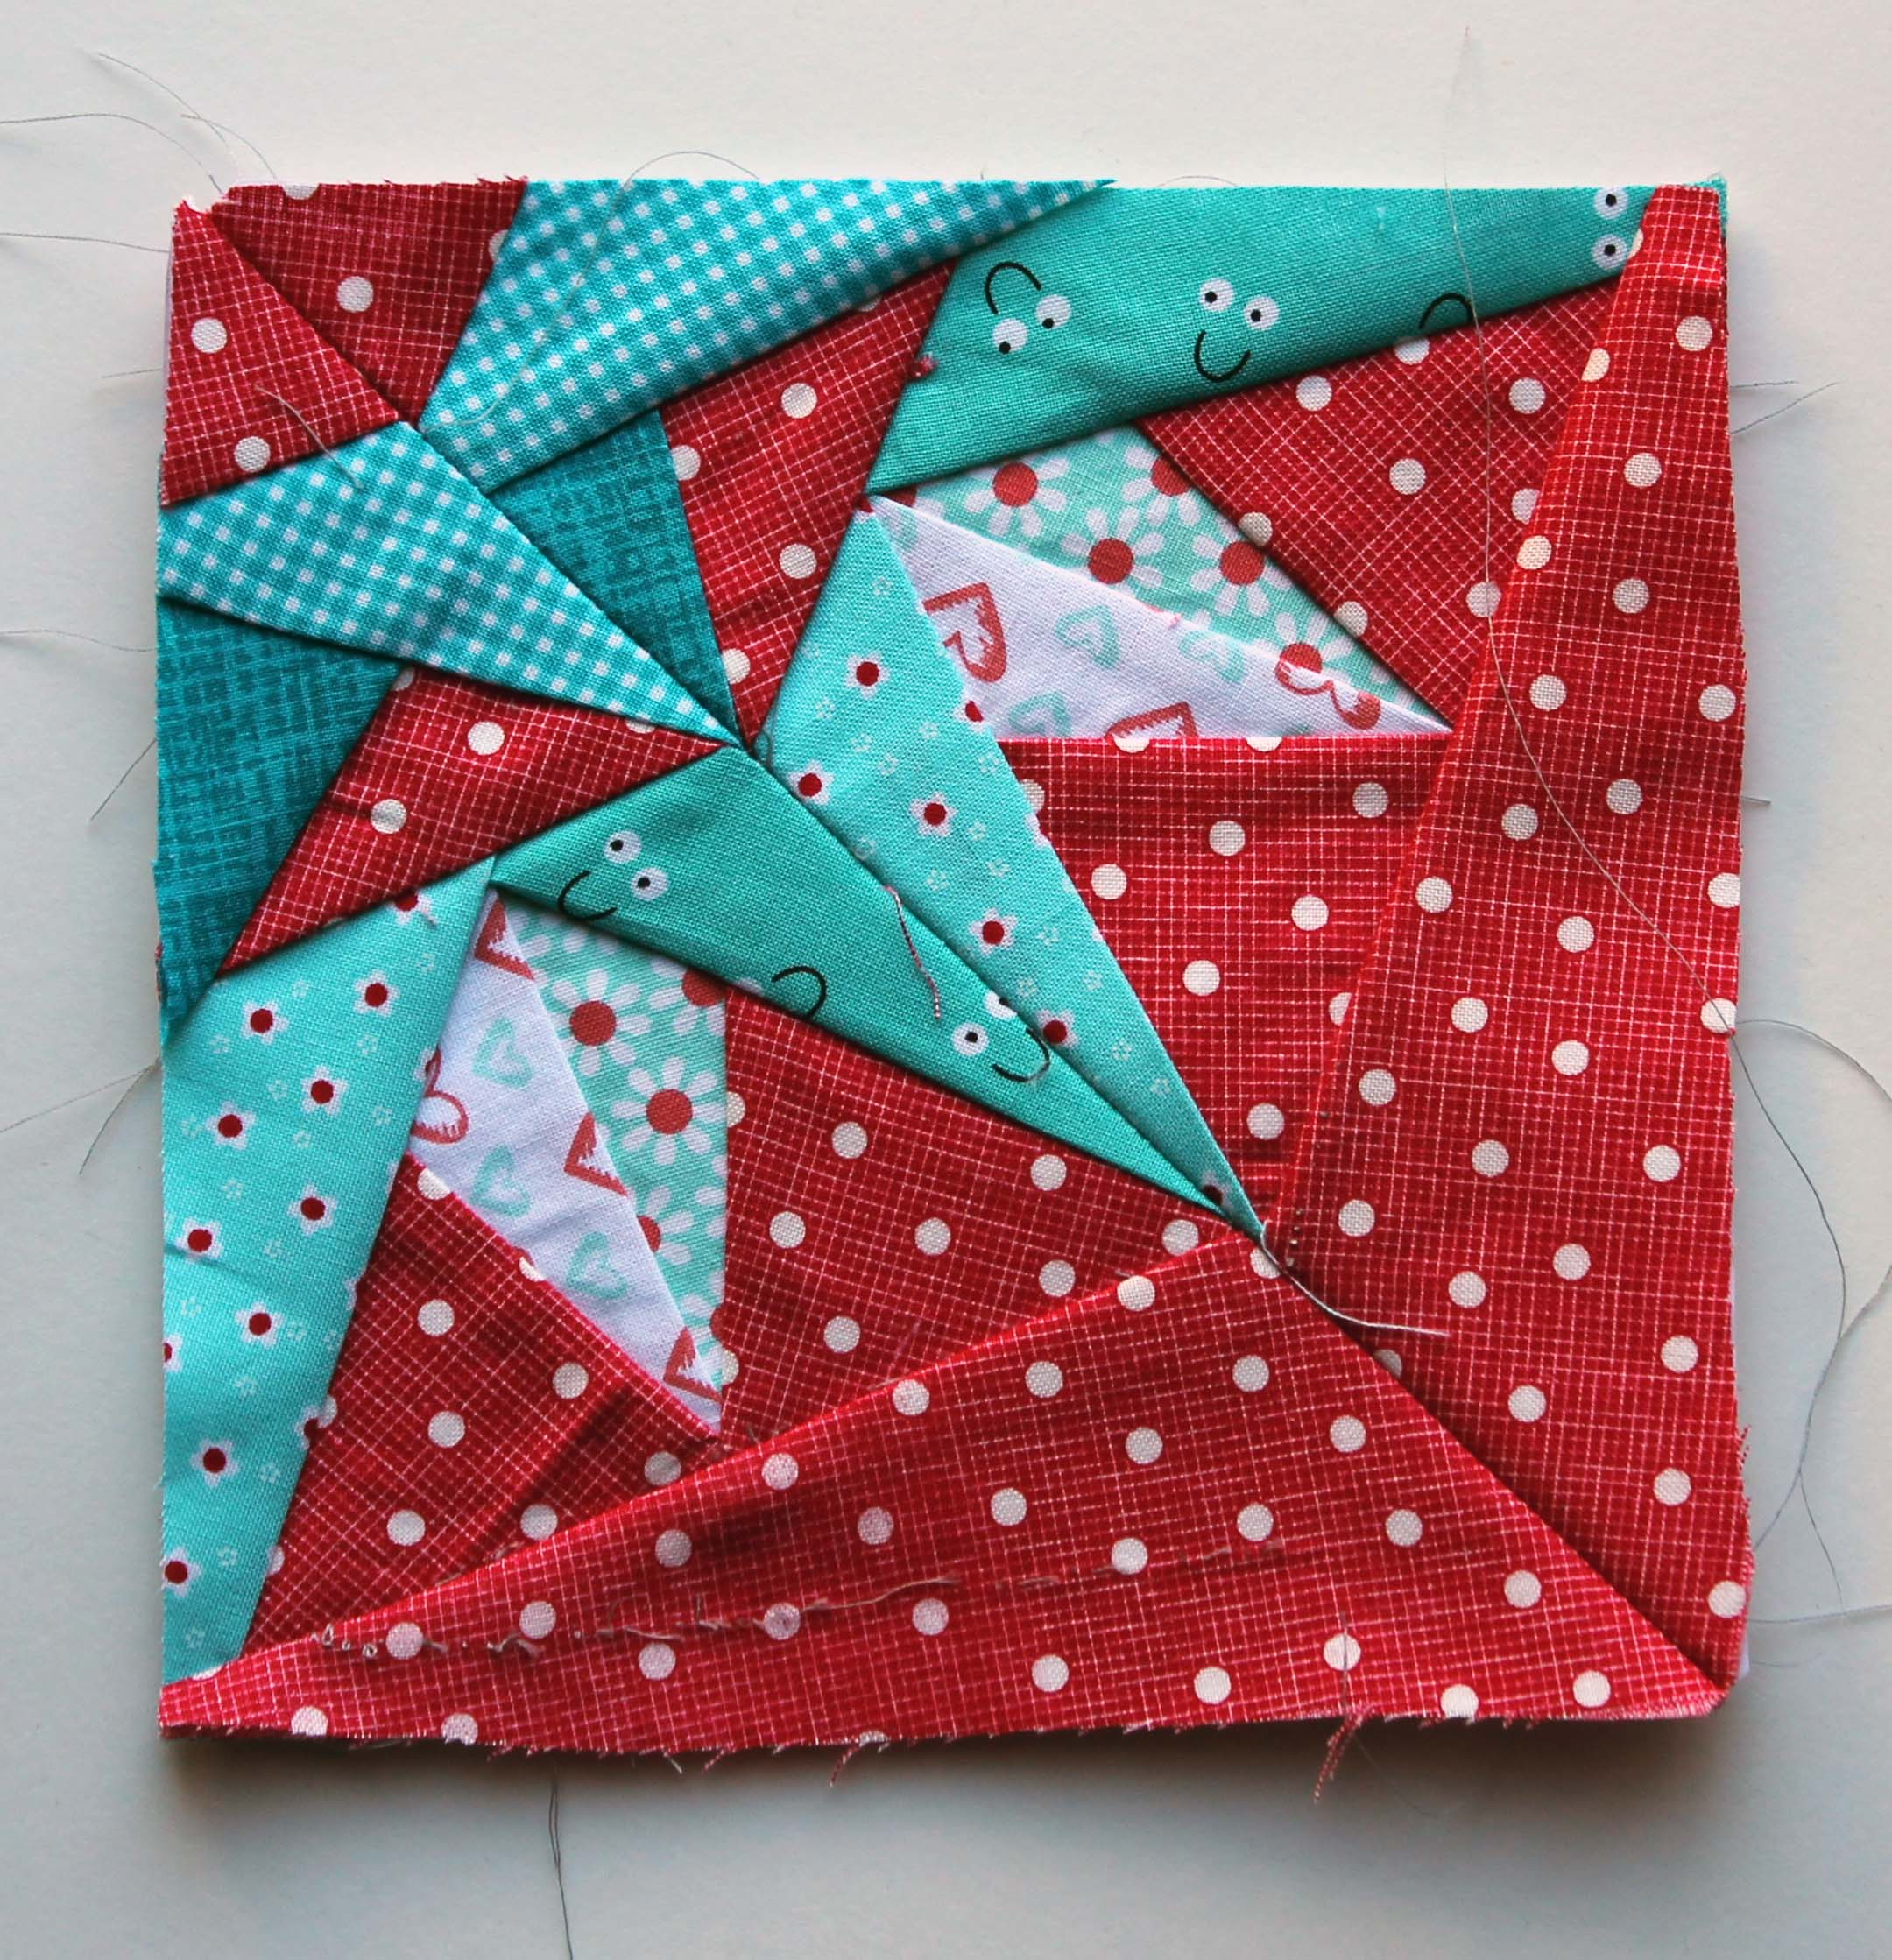 About Paper Piecing